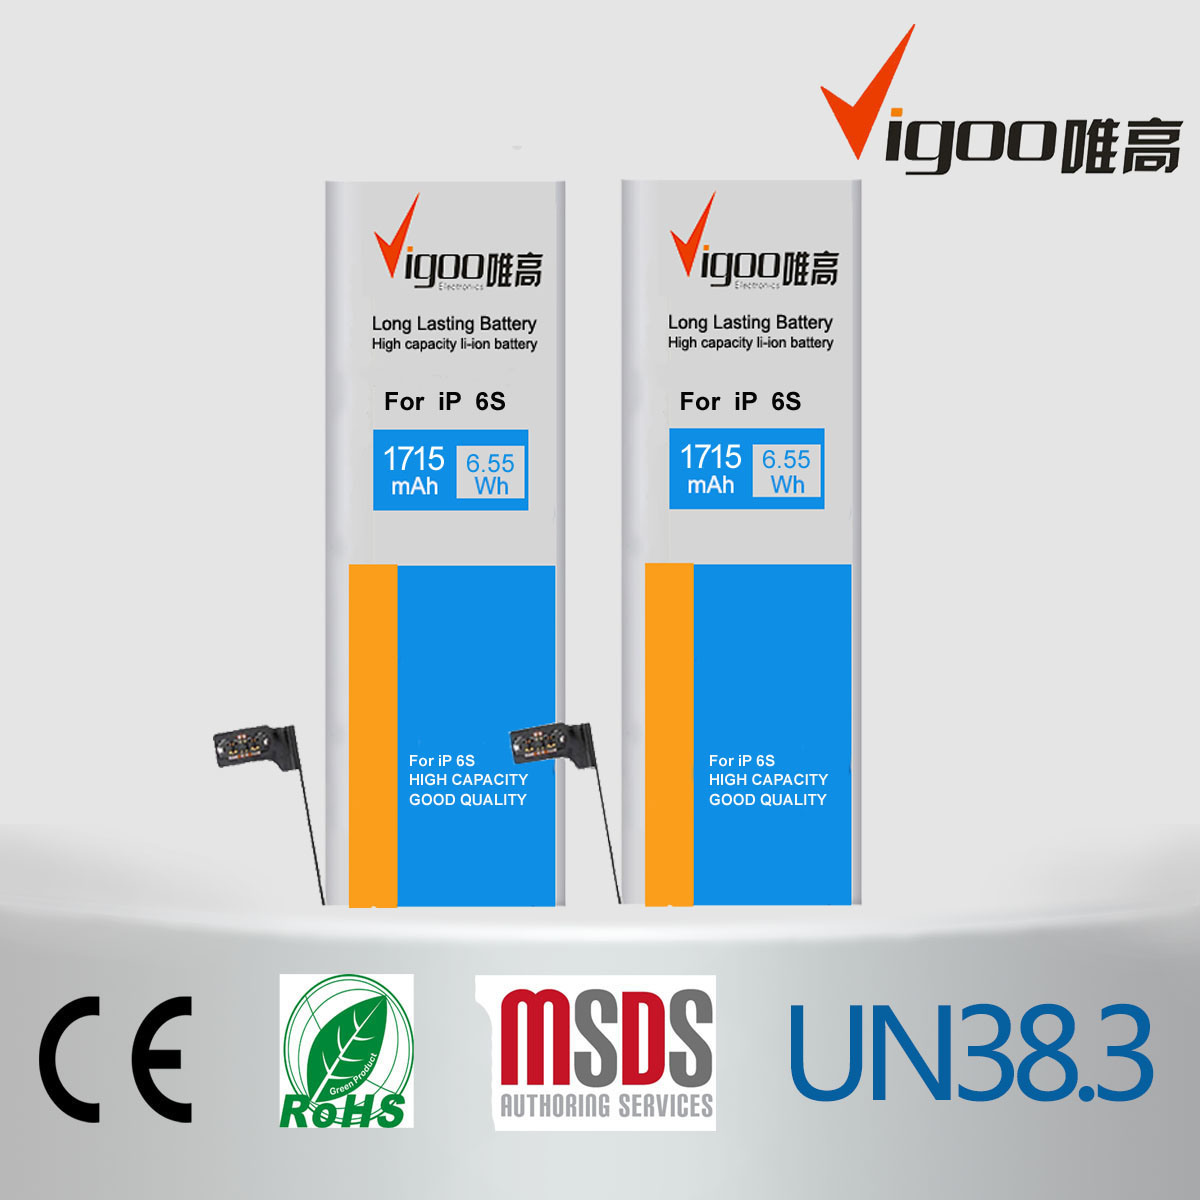 Super Quality Battery for iPhone 6g Plus